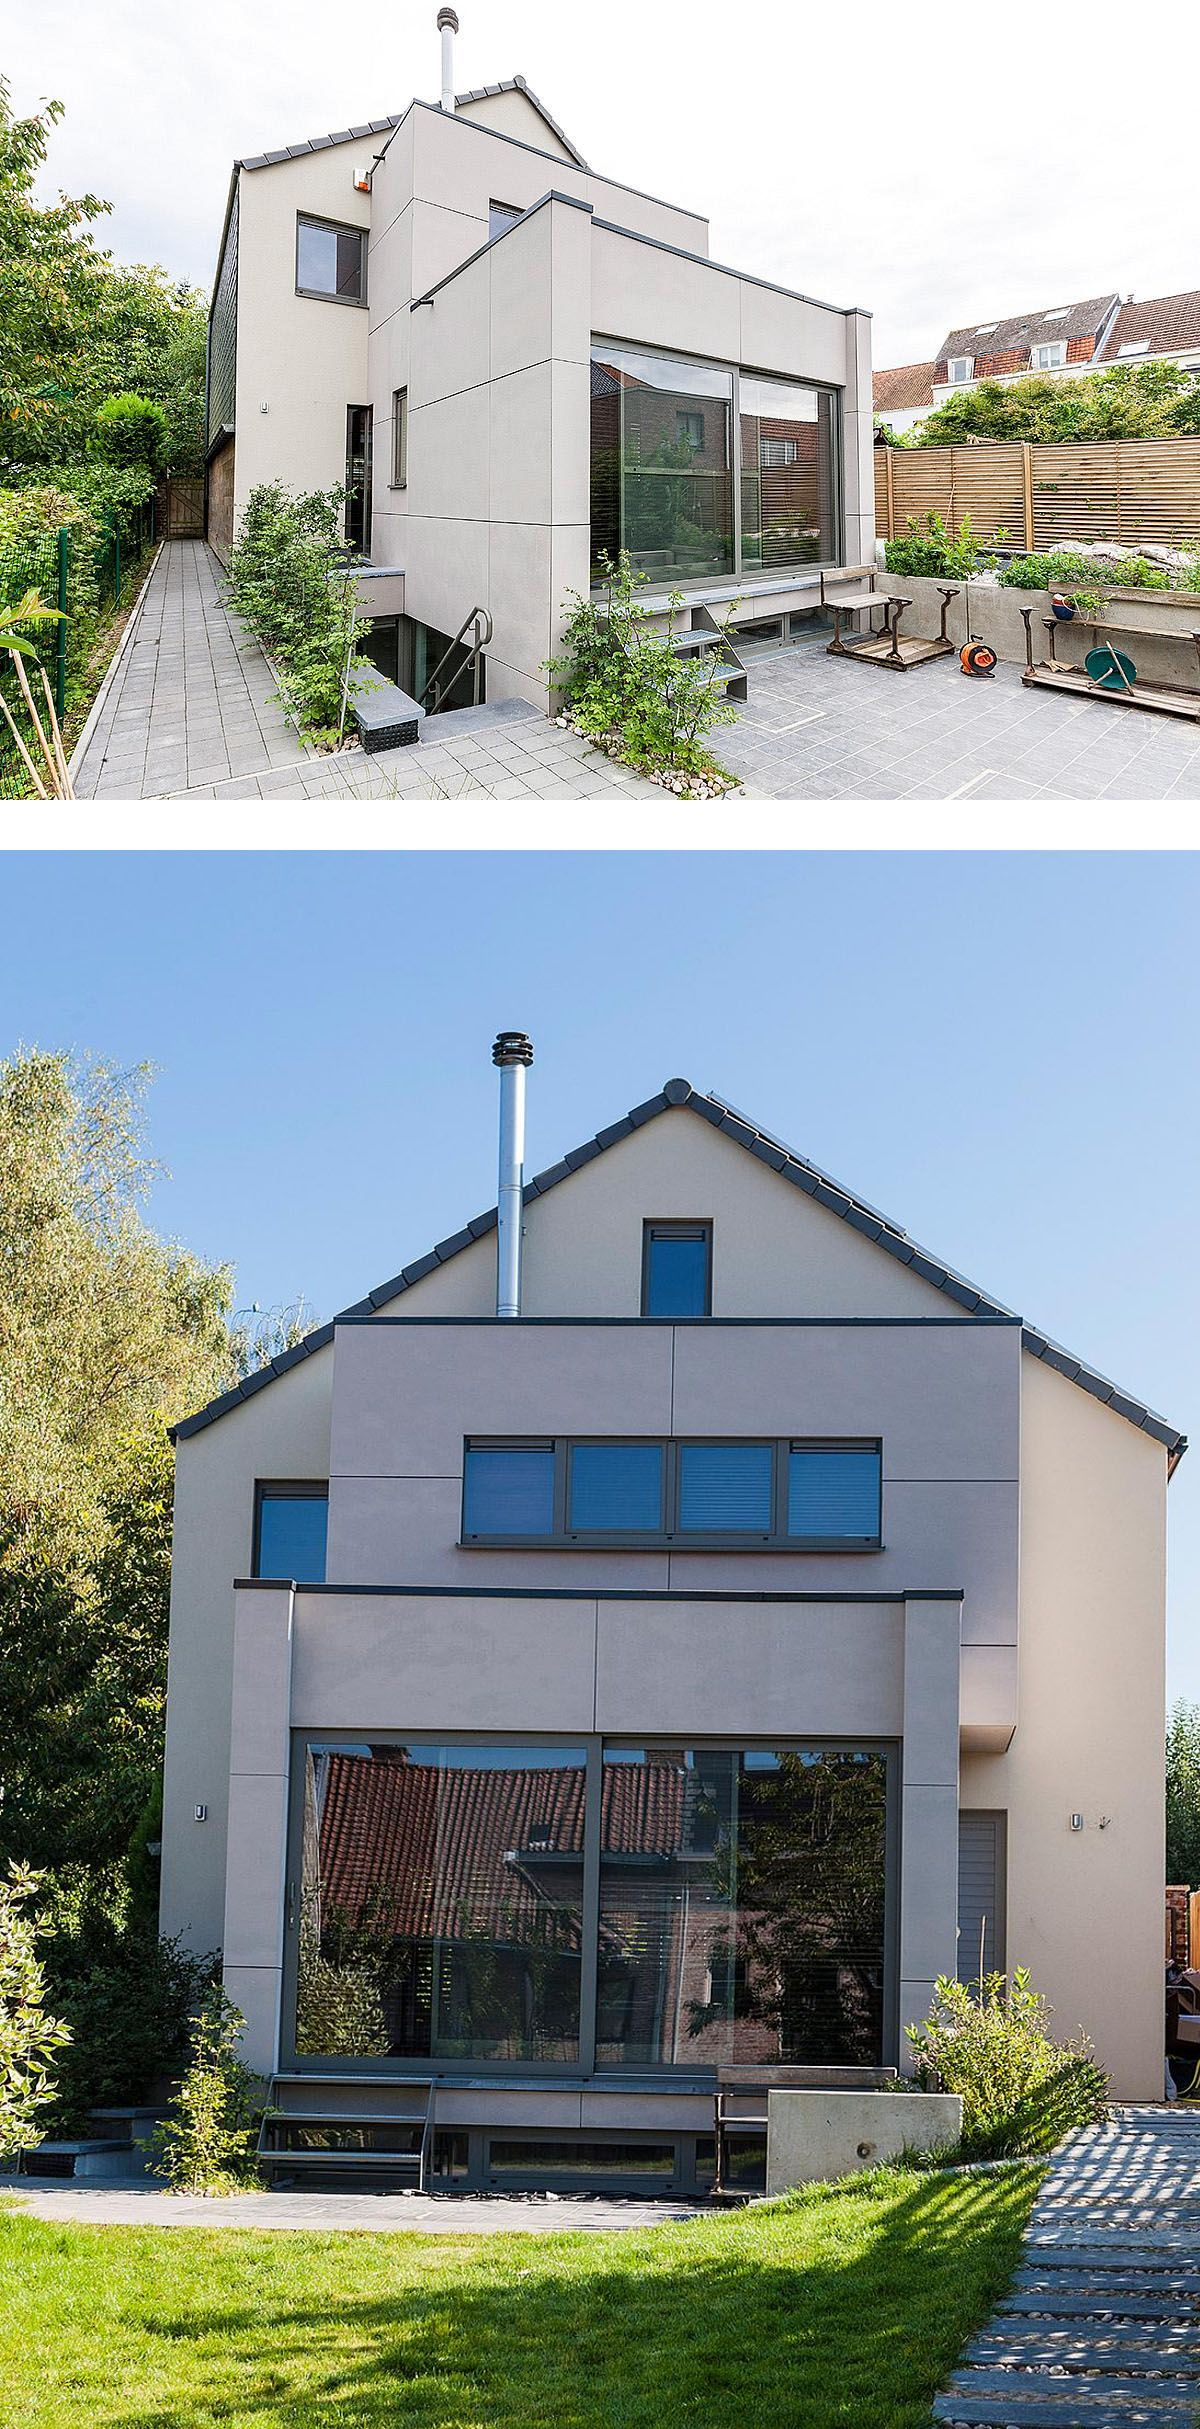 R novation tervuren extension ossature bois en fa ade for Transformation facade maison